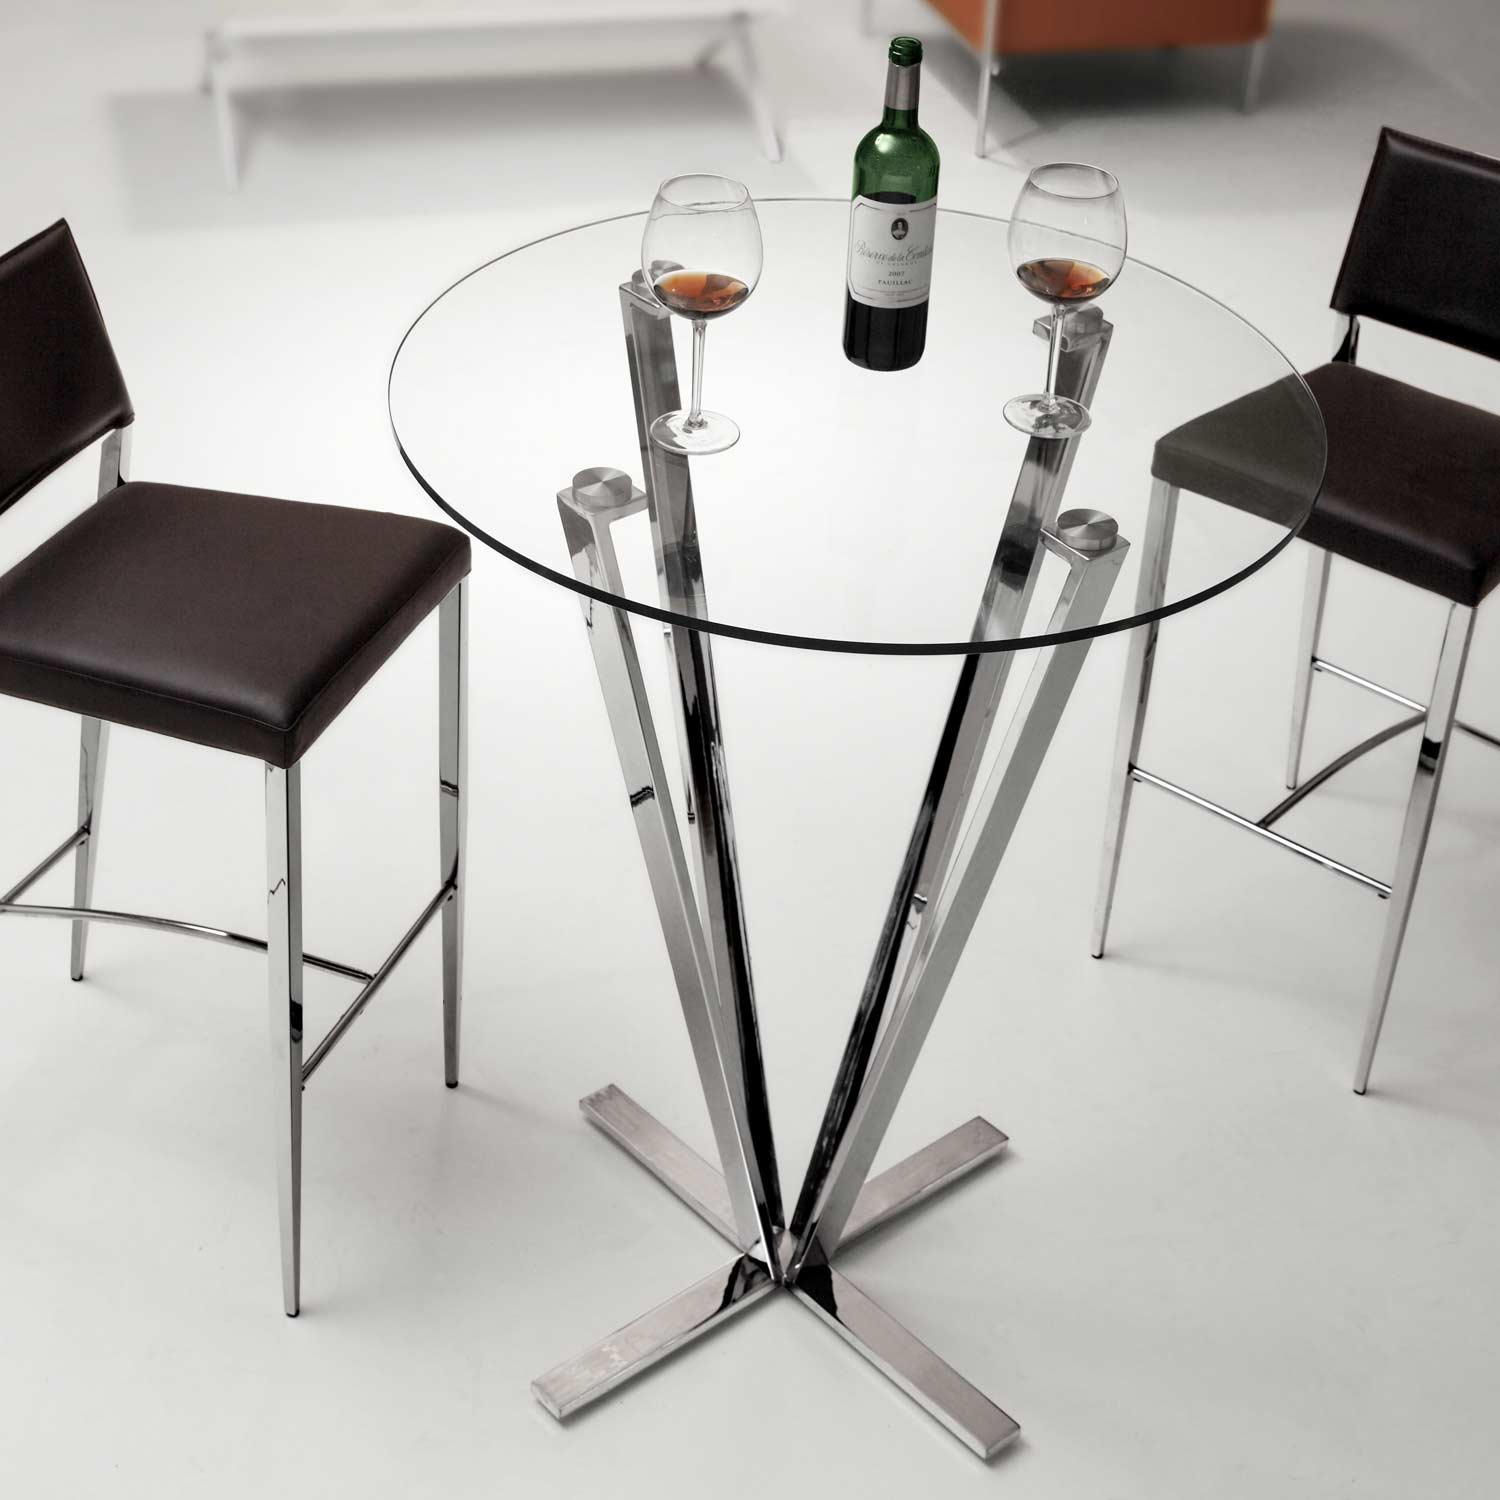 Mimosa Round Bar Table - Tempered Glass, Stainless Steel - ZM-601105